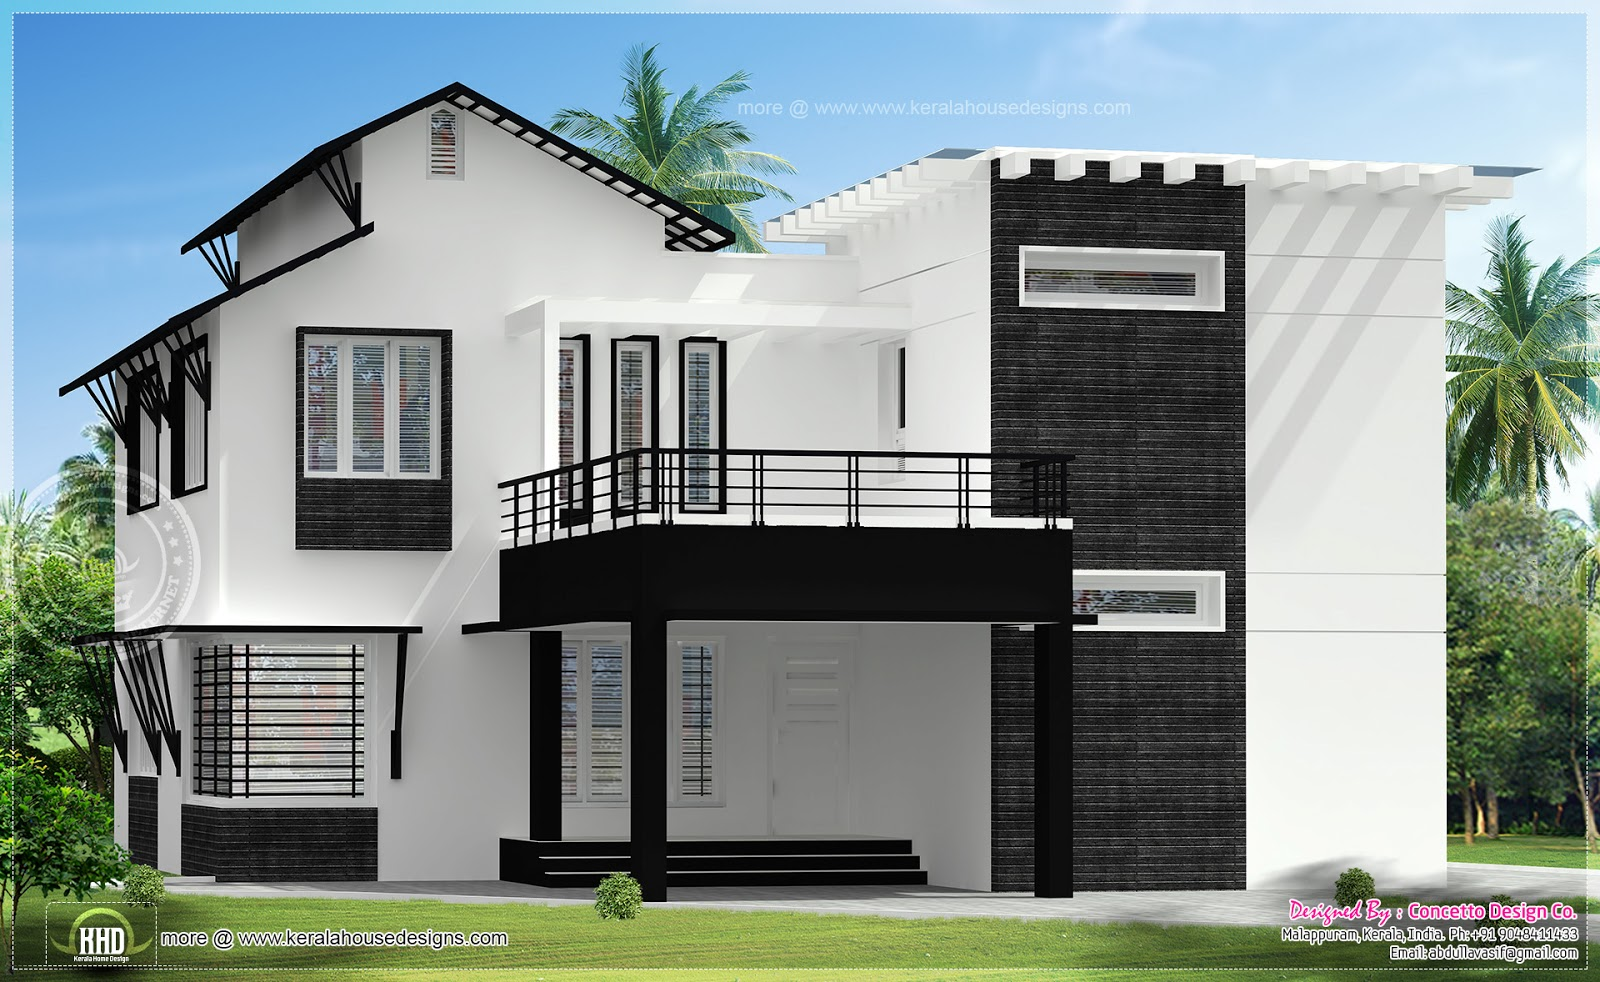 5 different house exteriors by concetto design kerala for Home plas